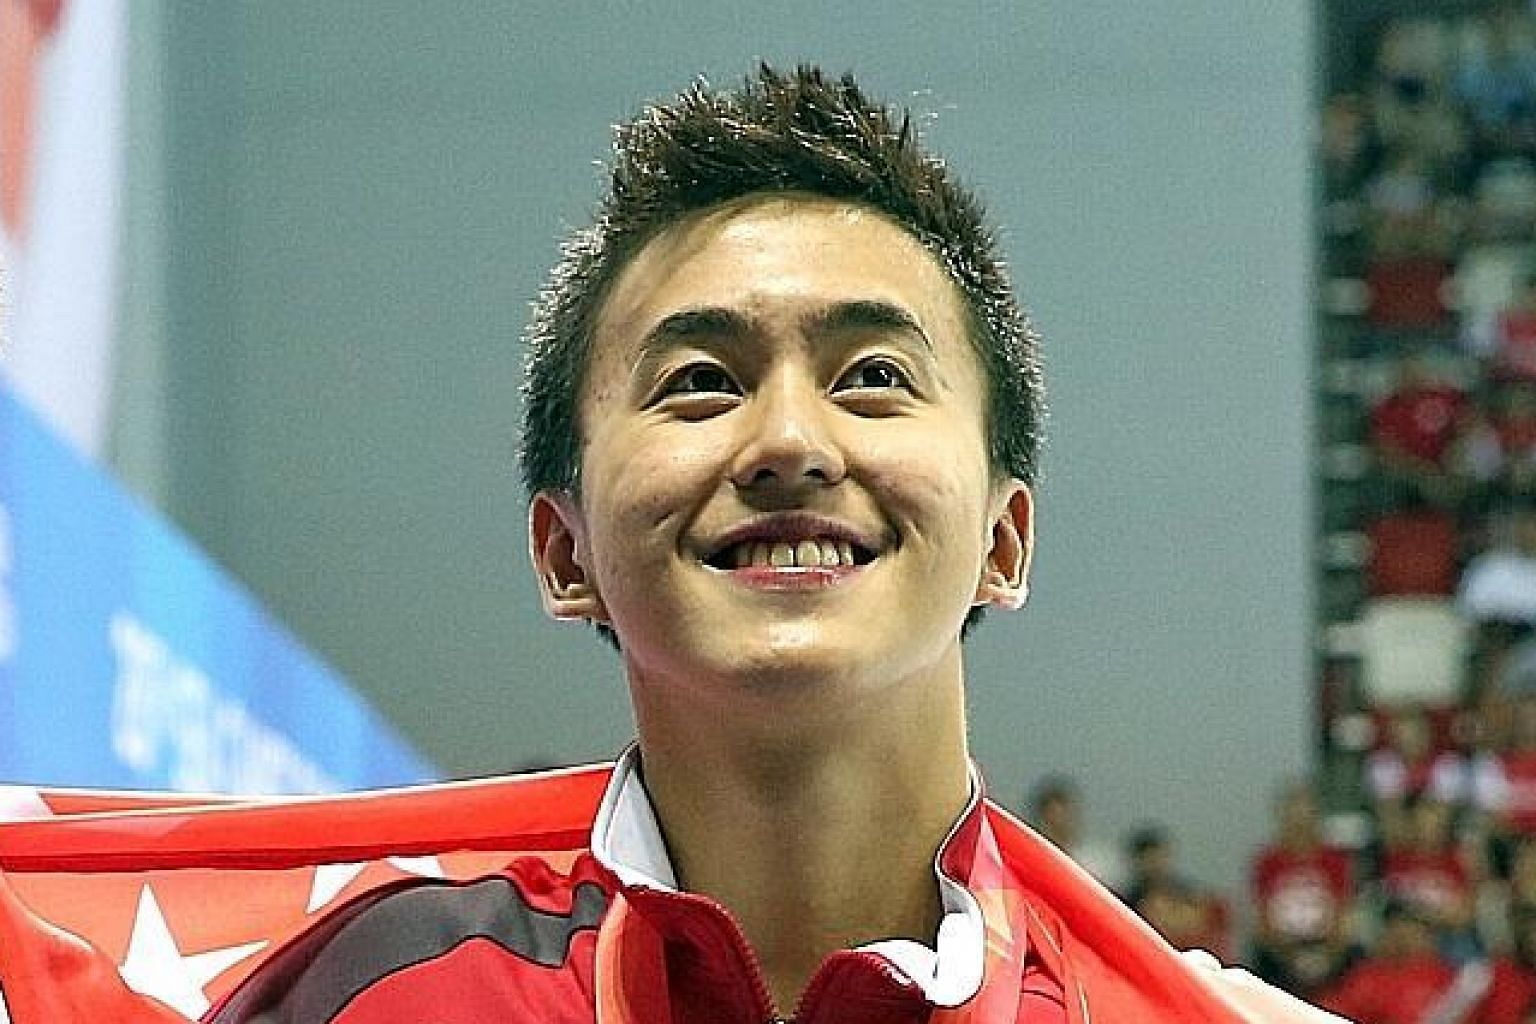 Quah has qualified for the Olympics in the 200m fly.